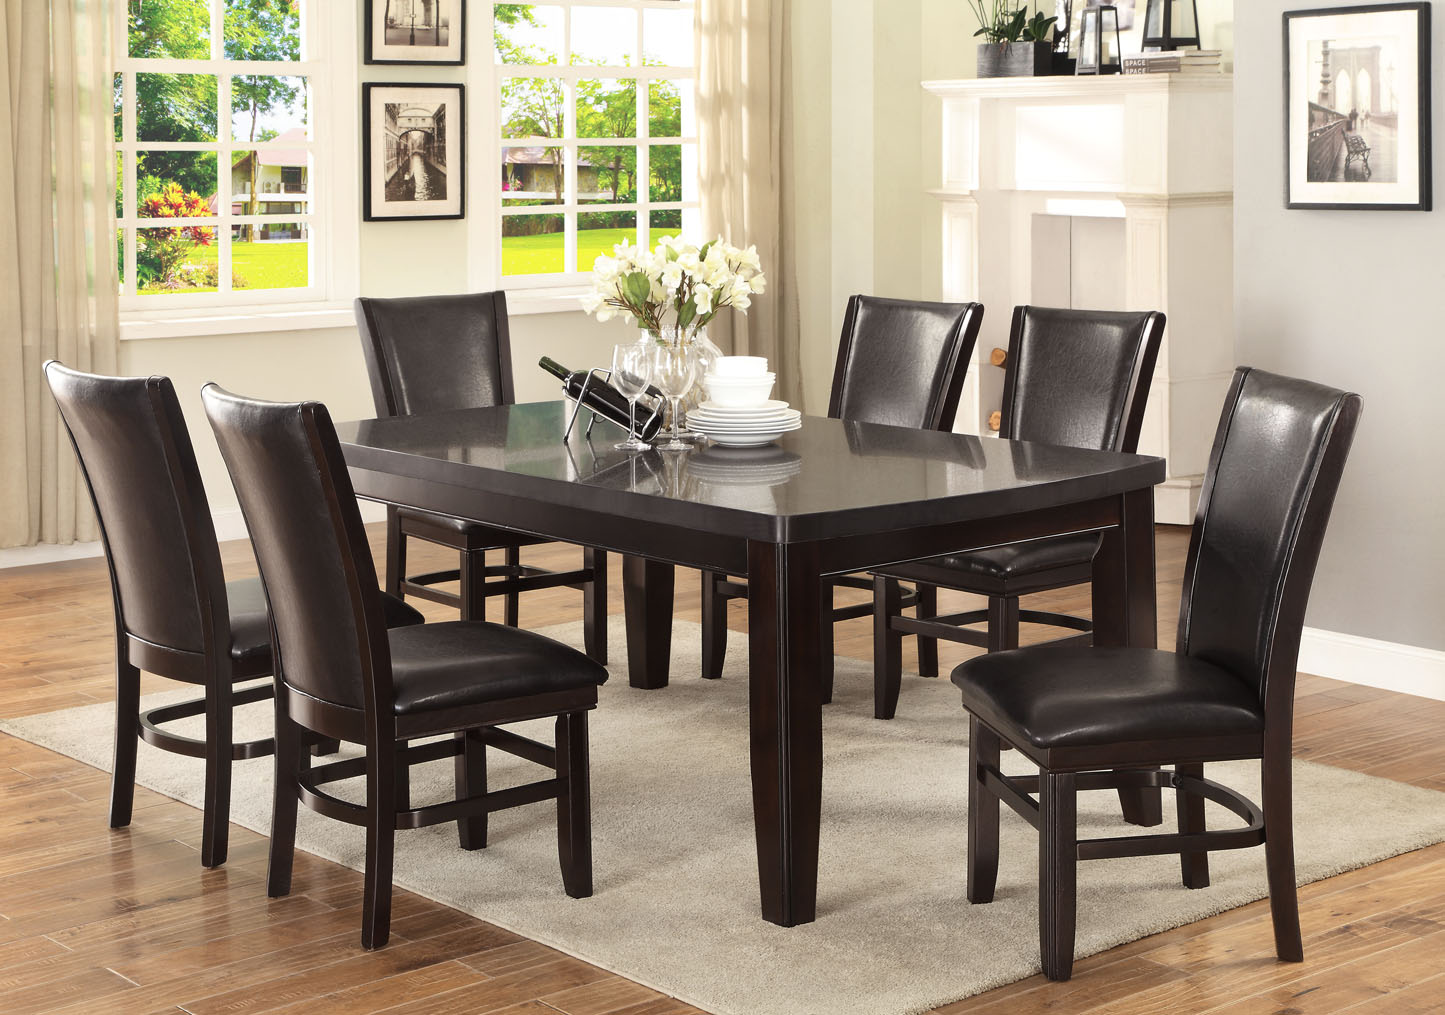 GL-4811 Carom Dining Table